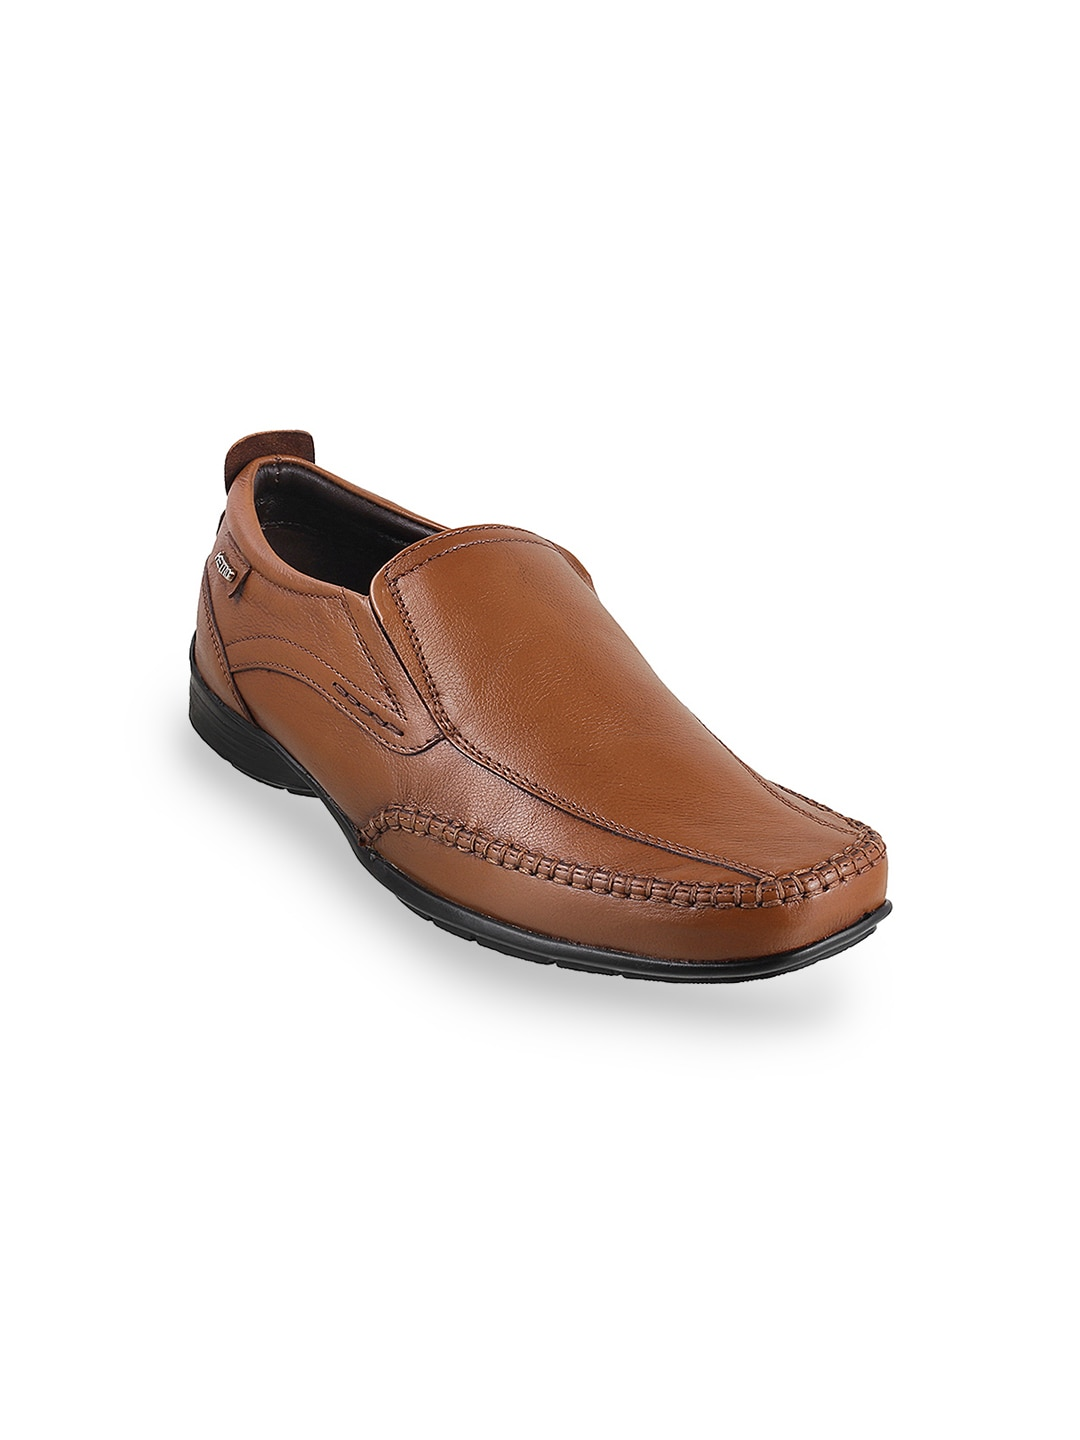 Metro Men Tan Solid Leather Slip-Ons image